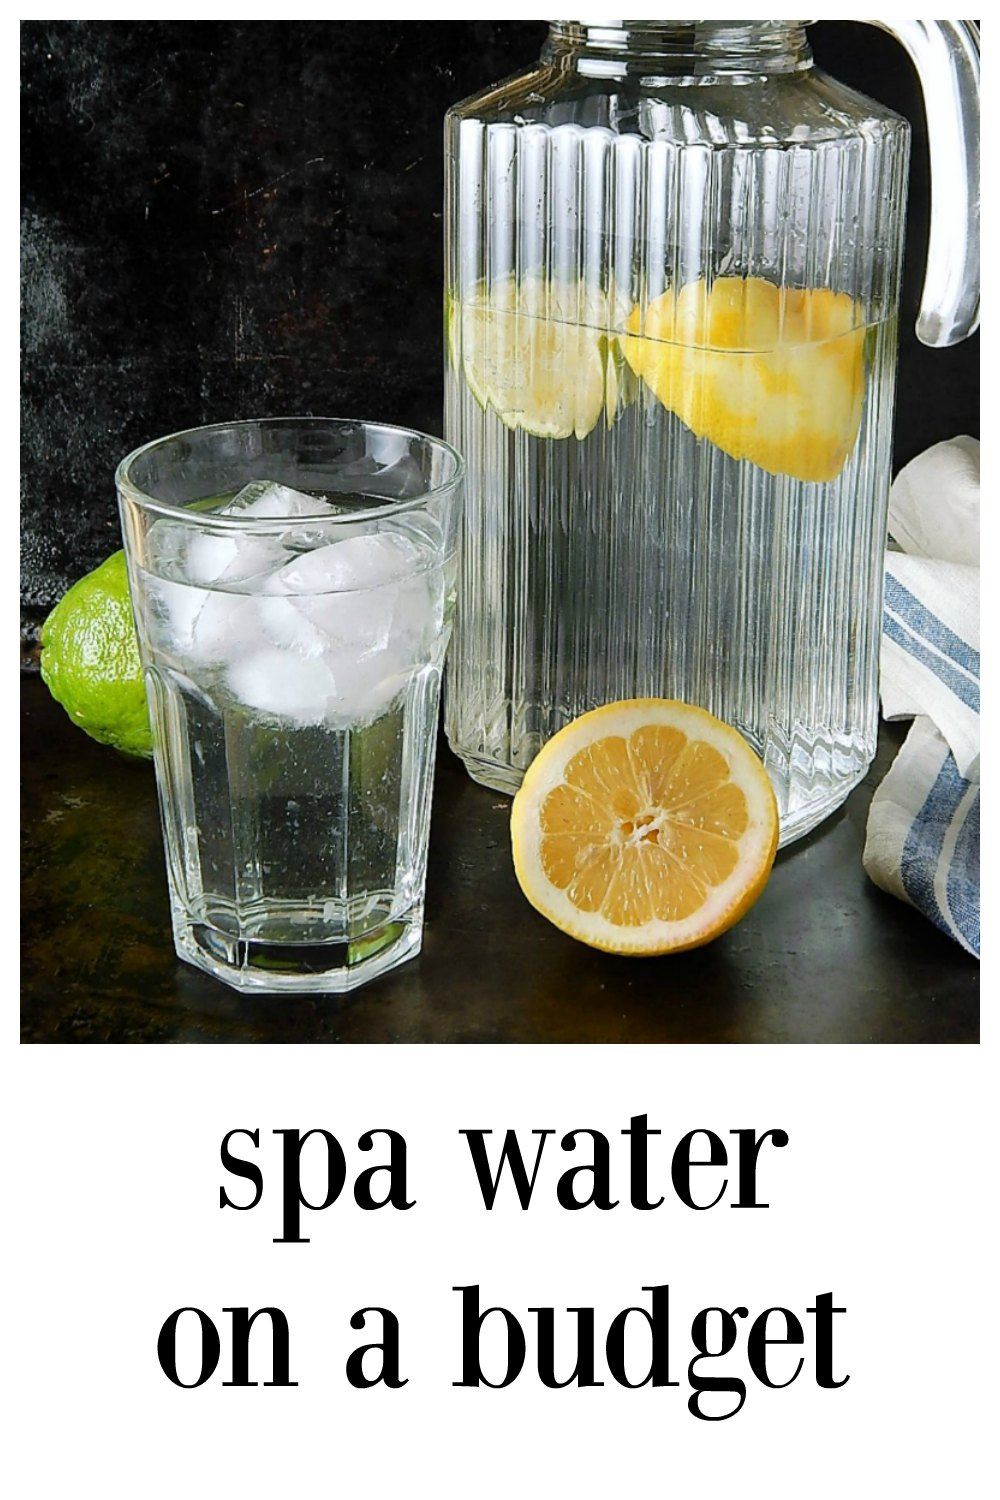 Put your fruit scraps and peelings to good use! Use them to infuse water for Spa Water on a Budget. It's surprising how much flavor is there. #SpaWater #SpaWaterOnABudget #InfusedWater #EasyInfusedWater #NoFoodWaste #FlavoredWaterEasy #FruitFlavoredWater